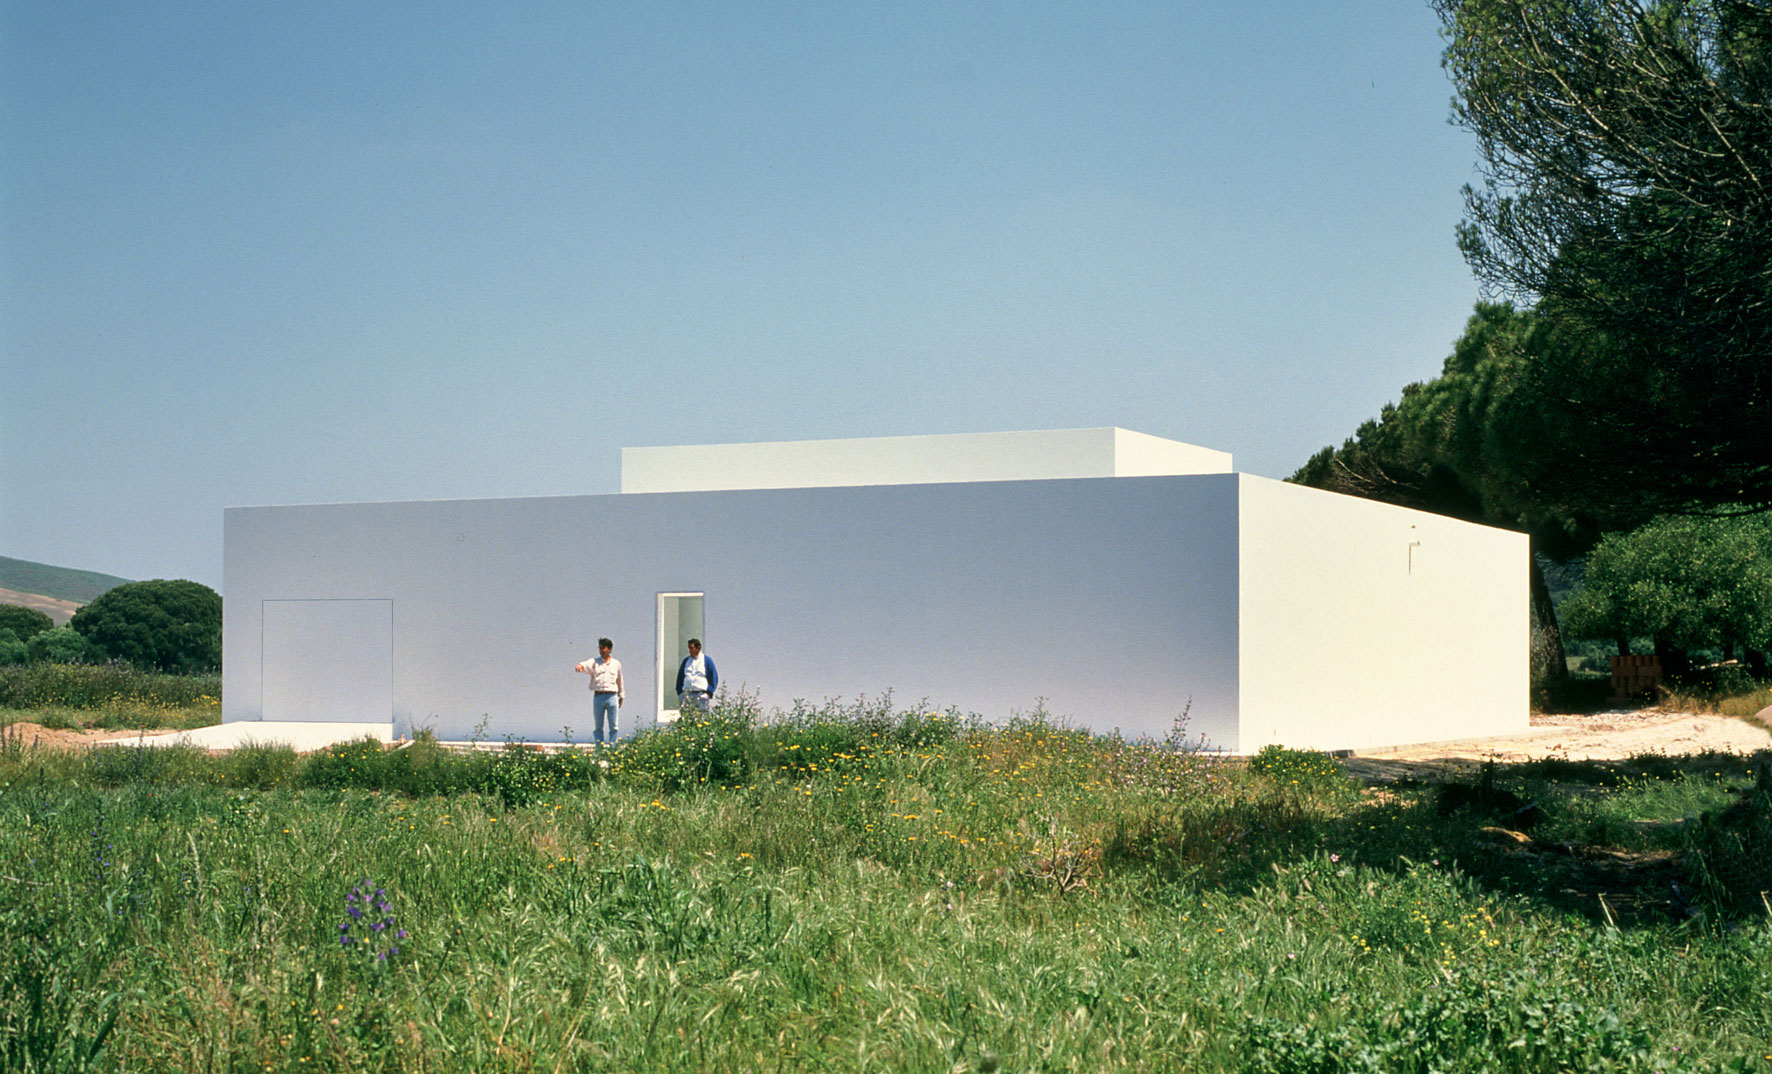 Exterior of the Gaspar house by Spanish architect Campos Baeza